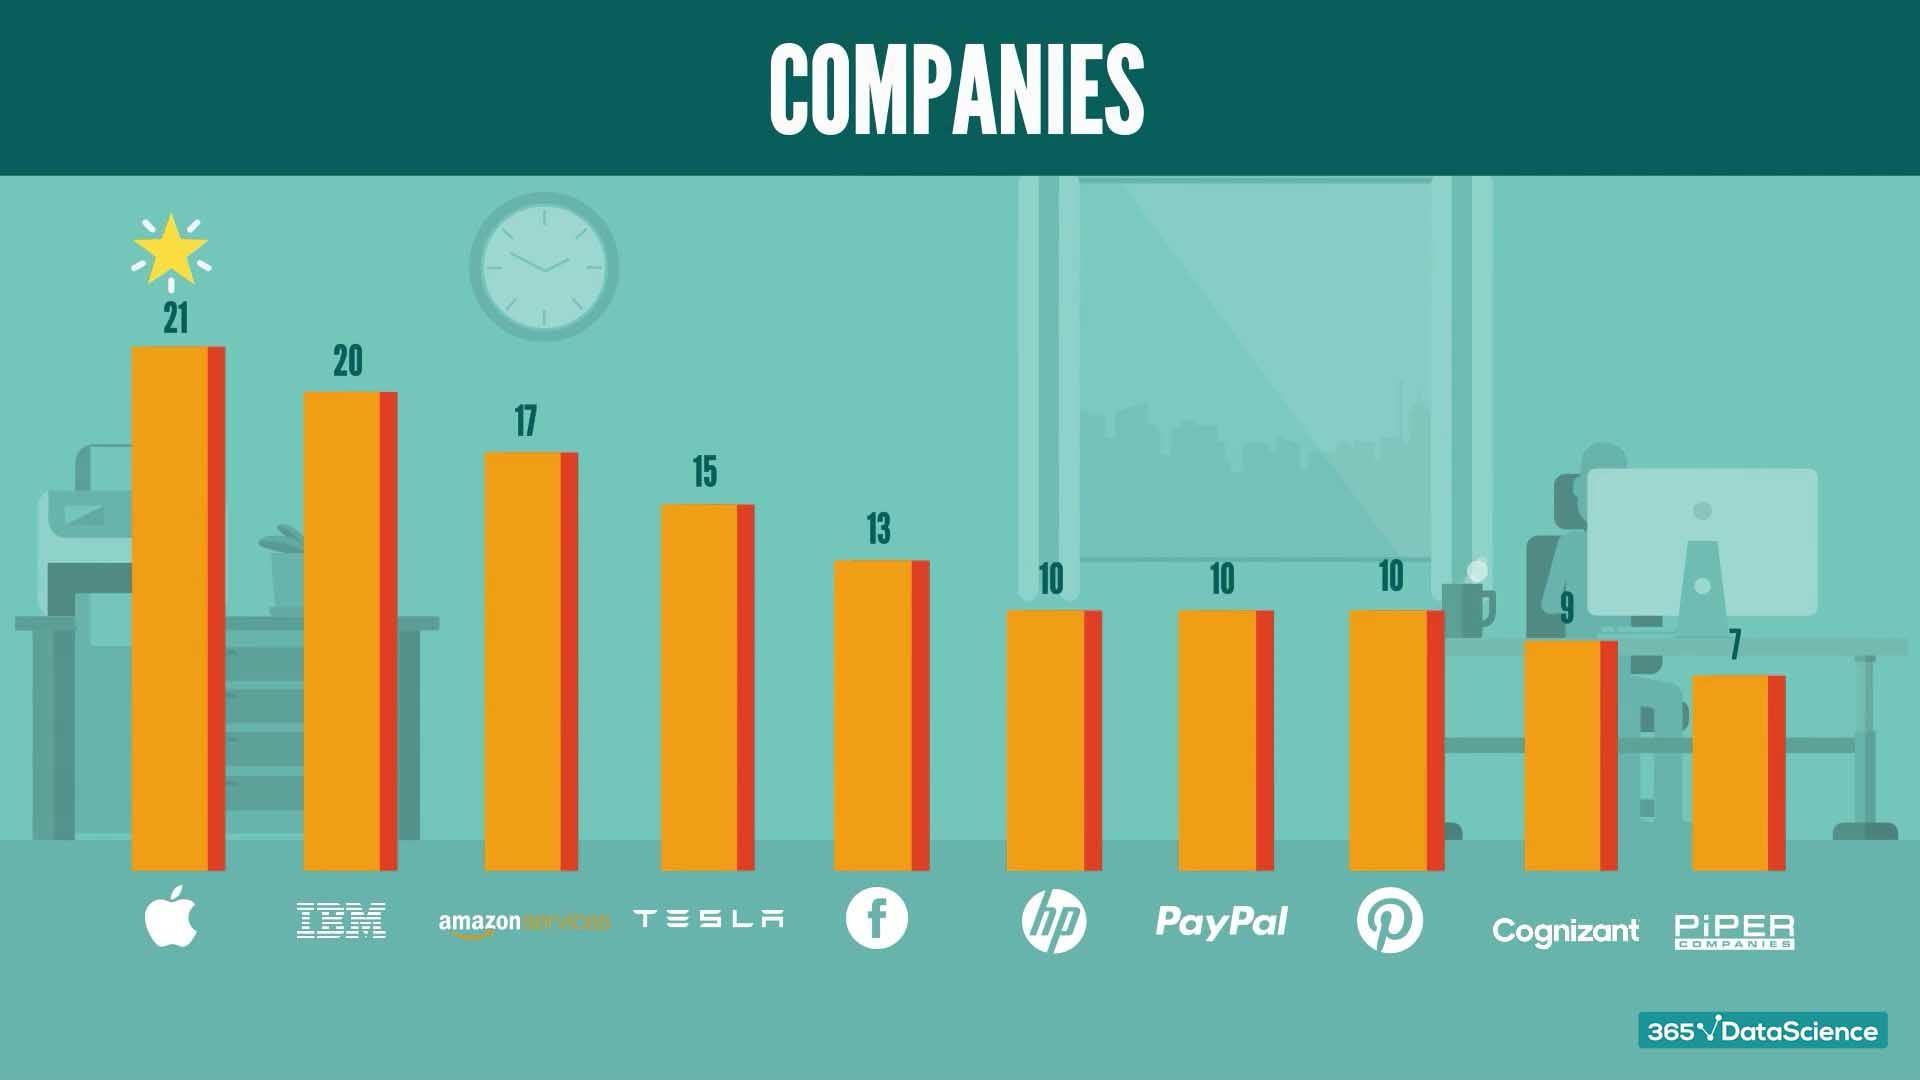 Companies with the highest number of Python job postings